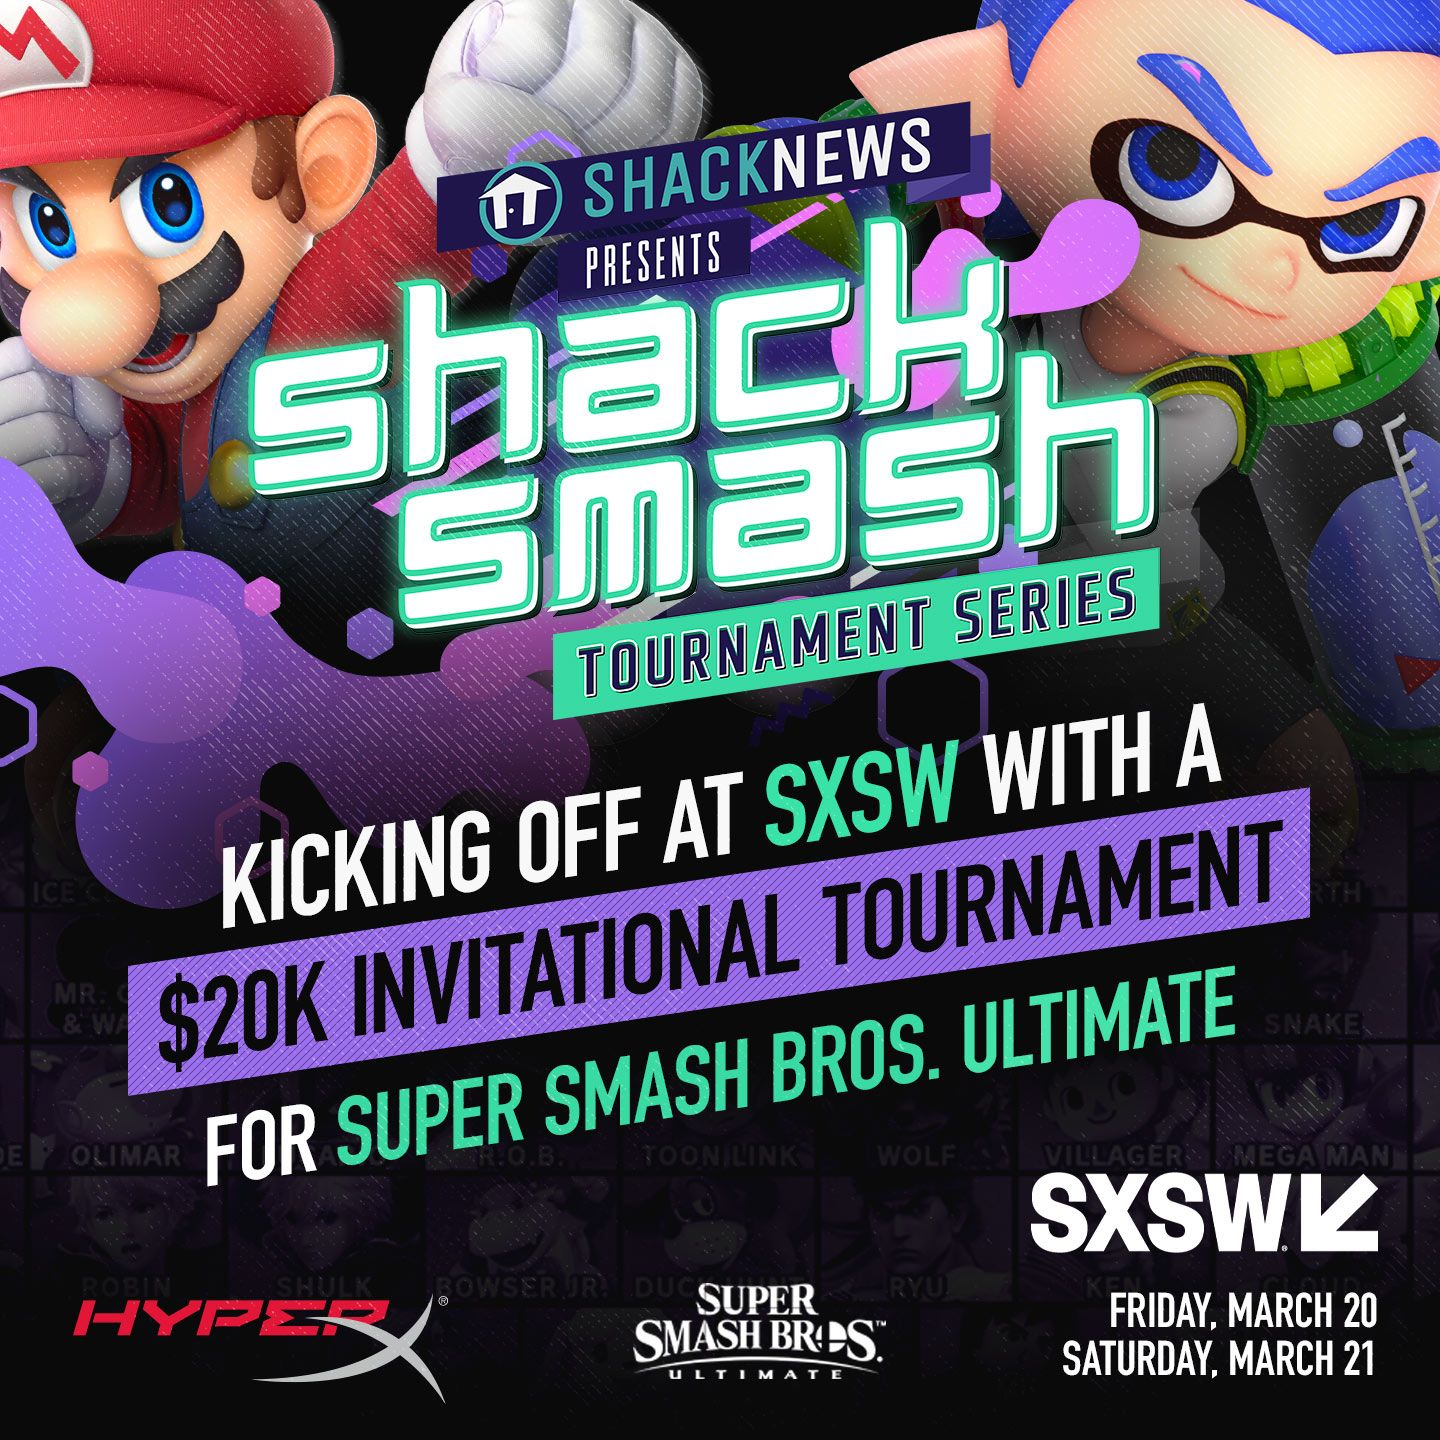 Shack Smash SXSW 2020 Hype Train boards here.